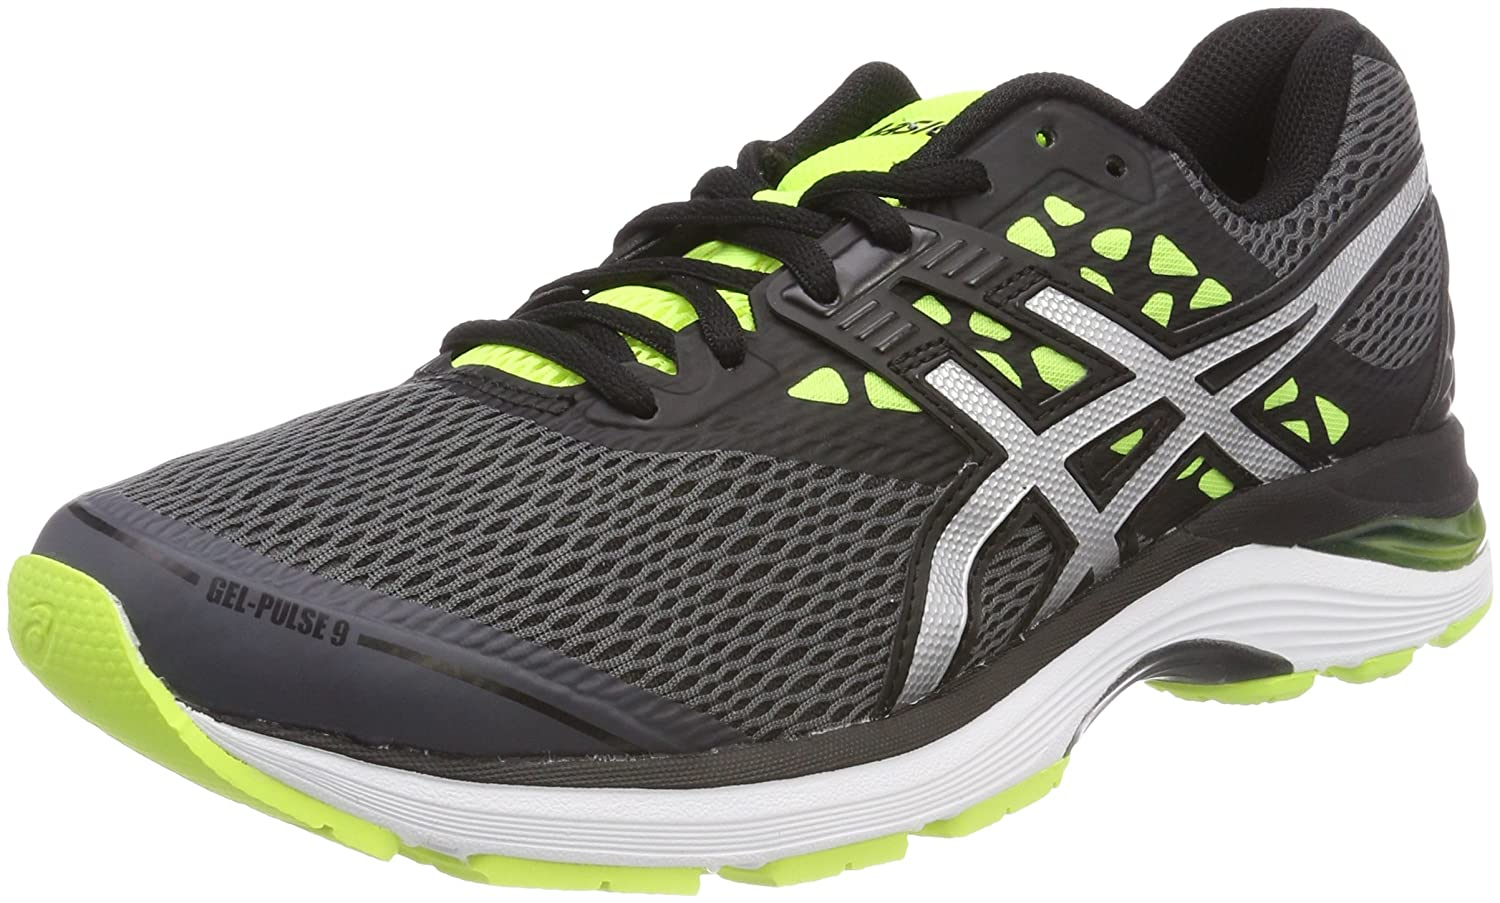 Asics Gel-Pulse 9, Zapatillas de Running para Hombre 42 EU|Multicolor (Carbon/Silver/Safety Yellow 9793)